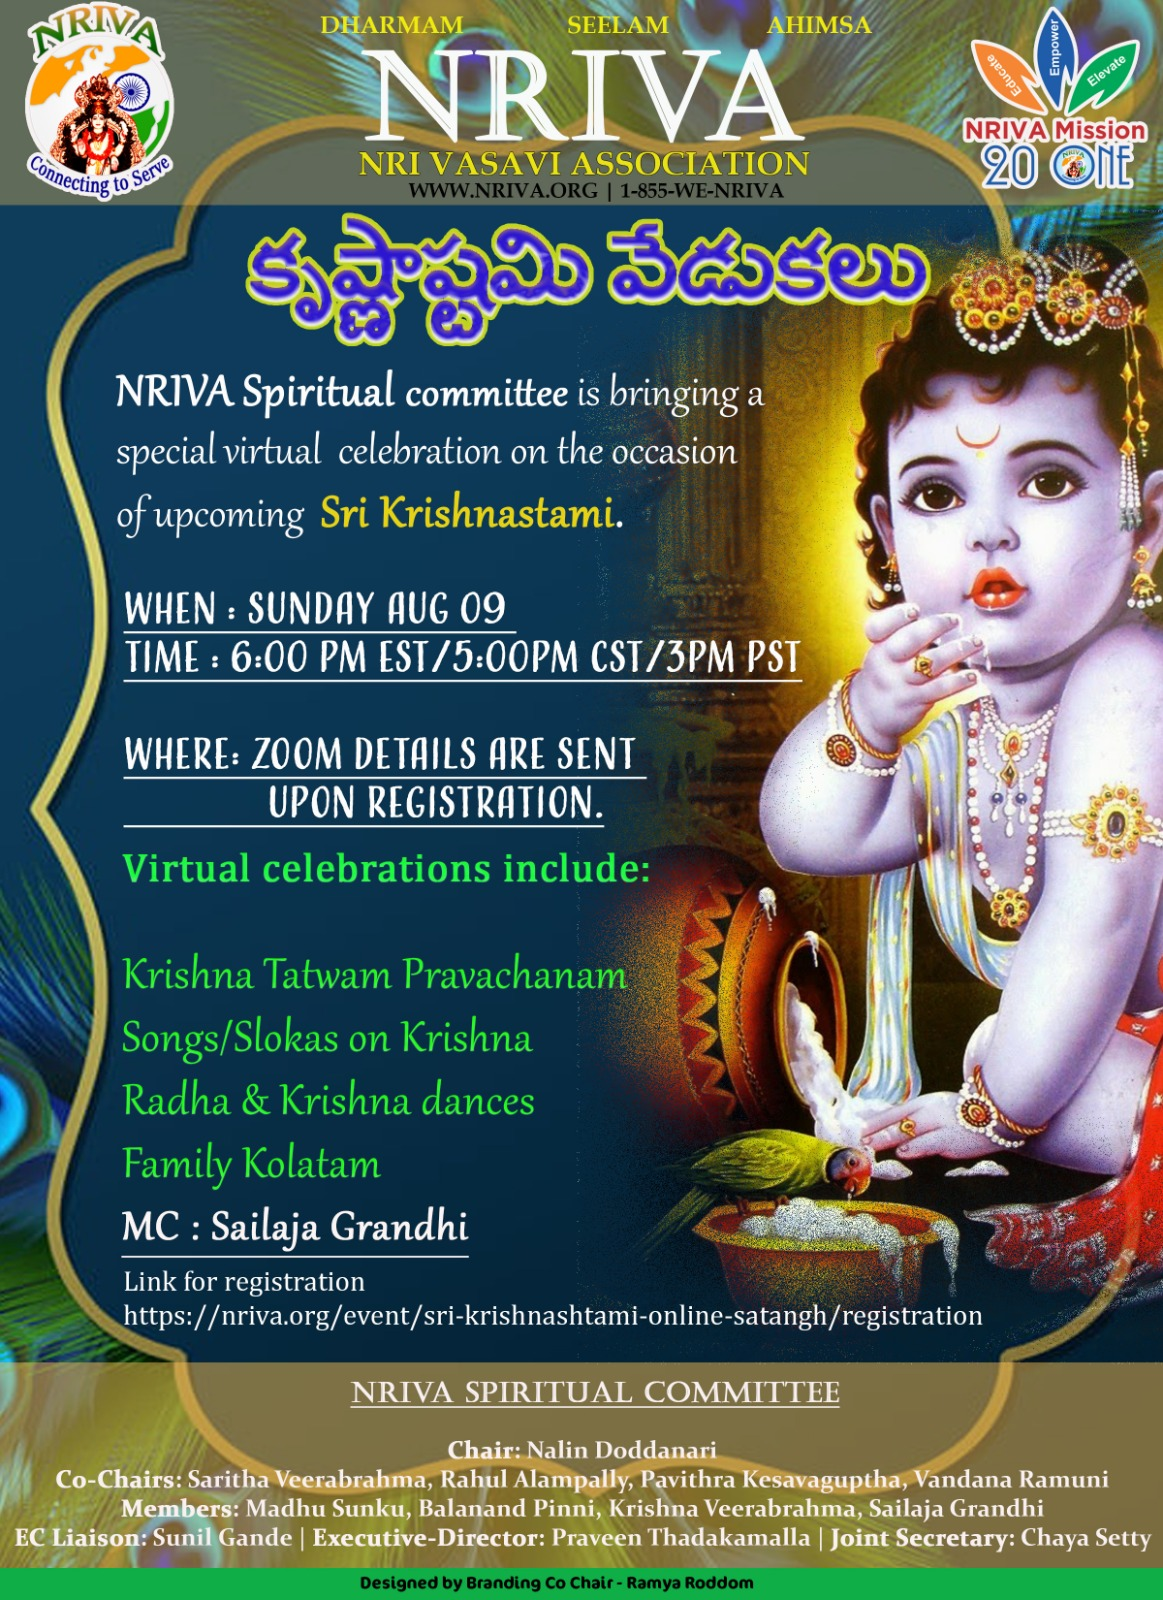 Sri Krishnashtami virtual celebration